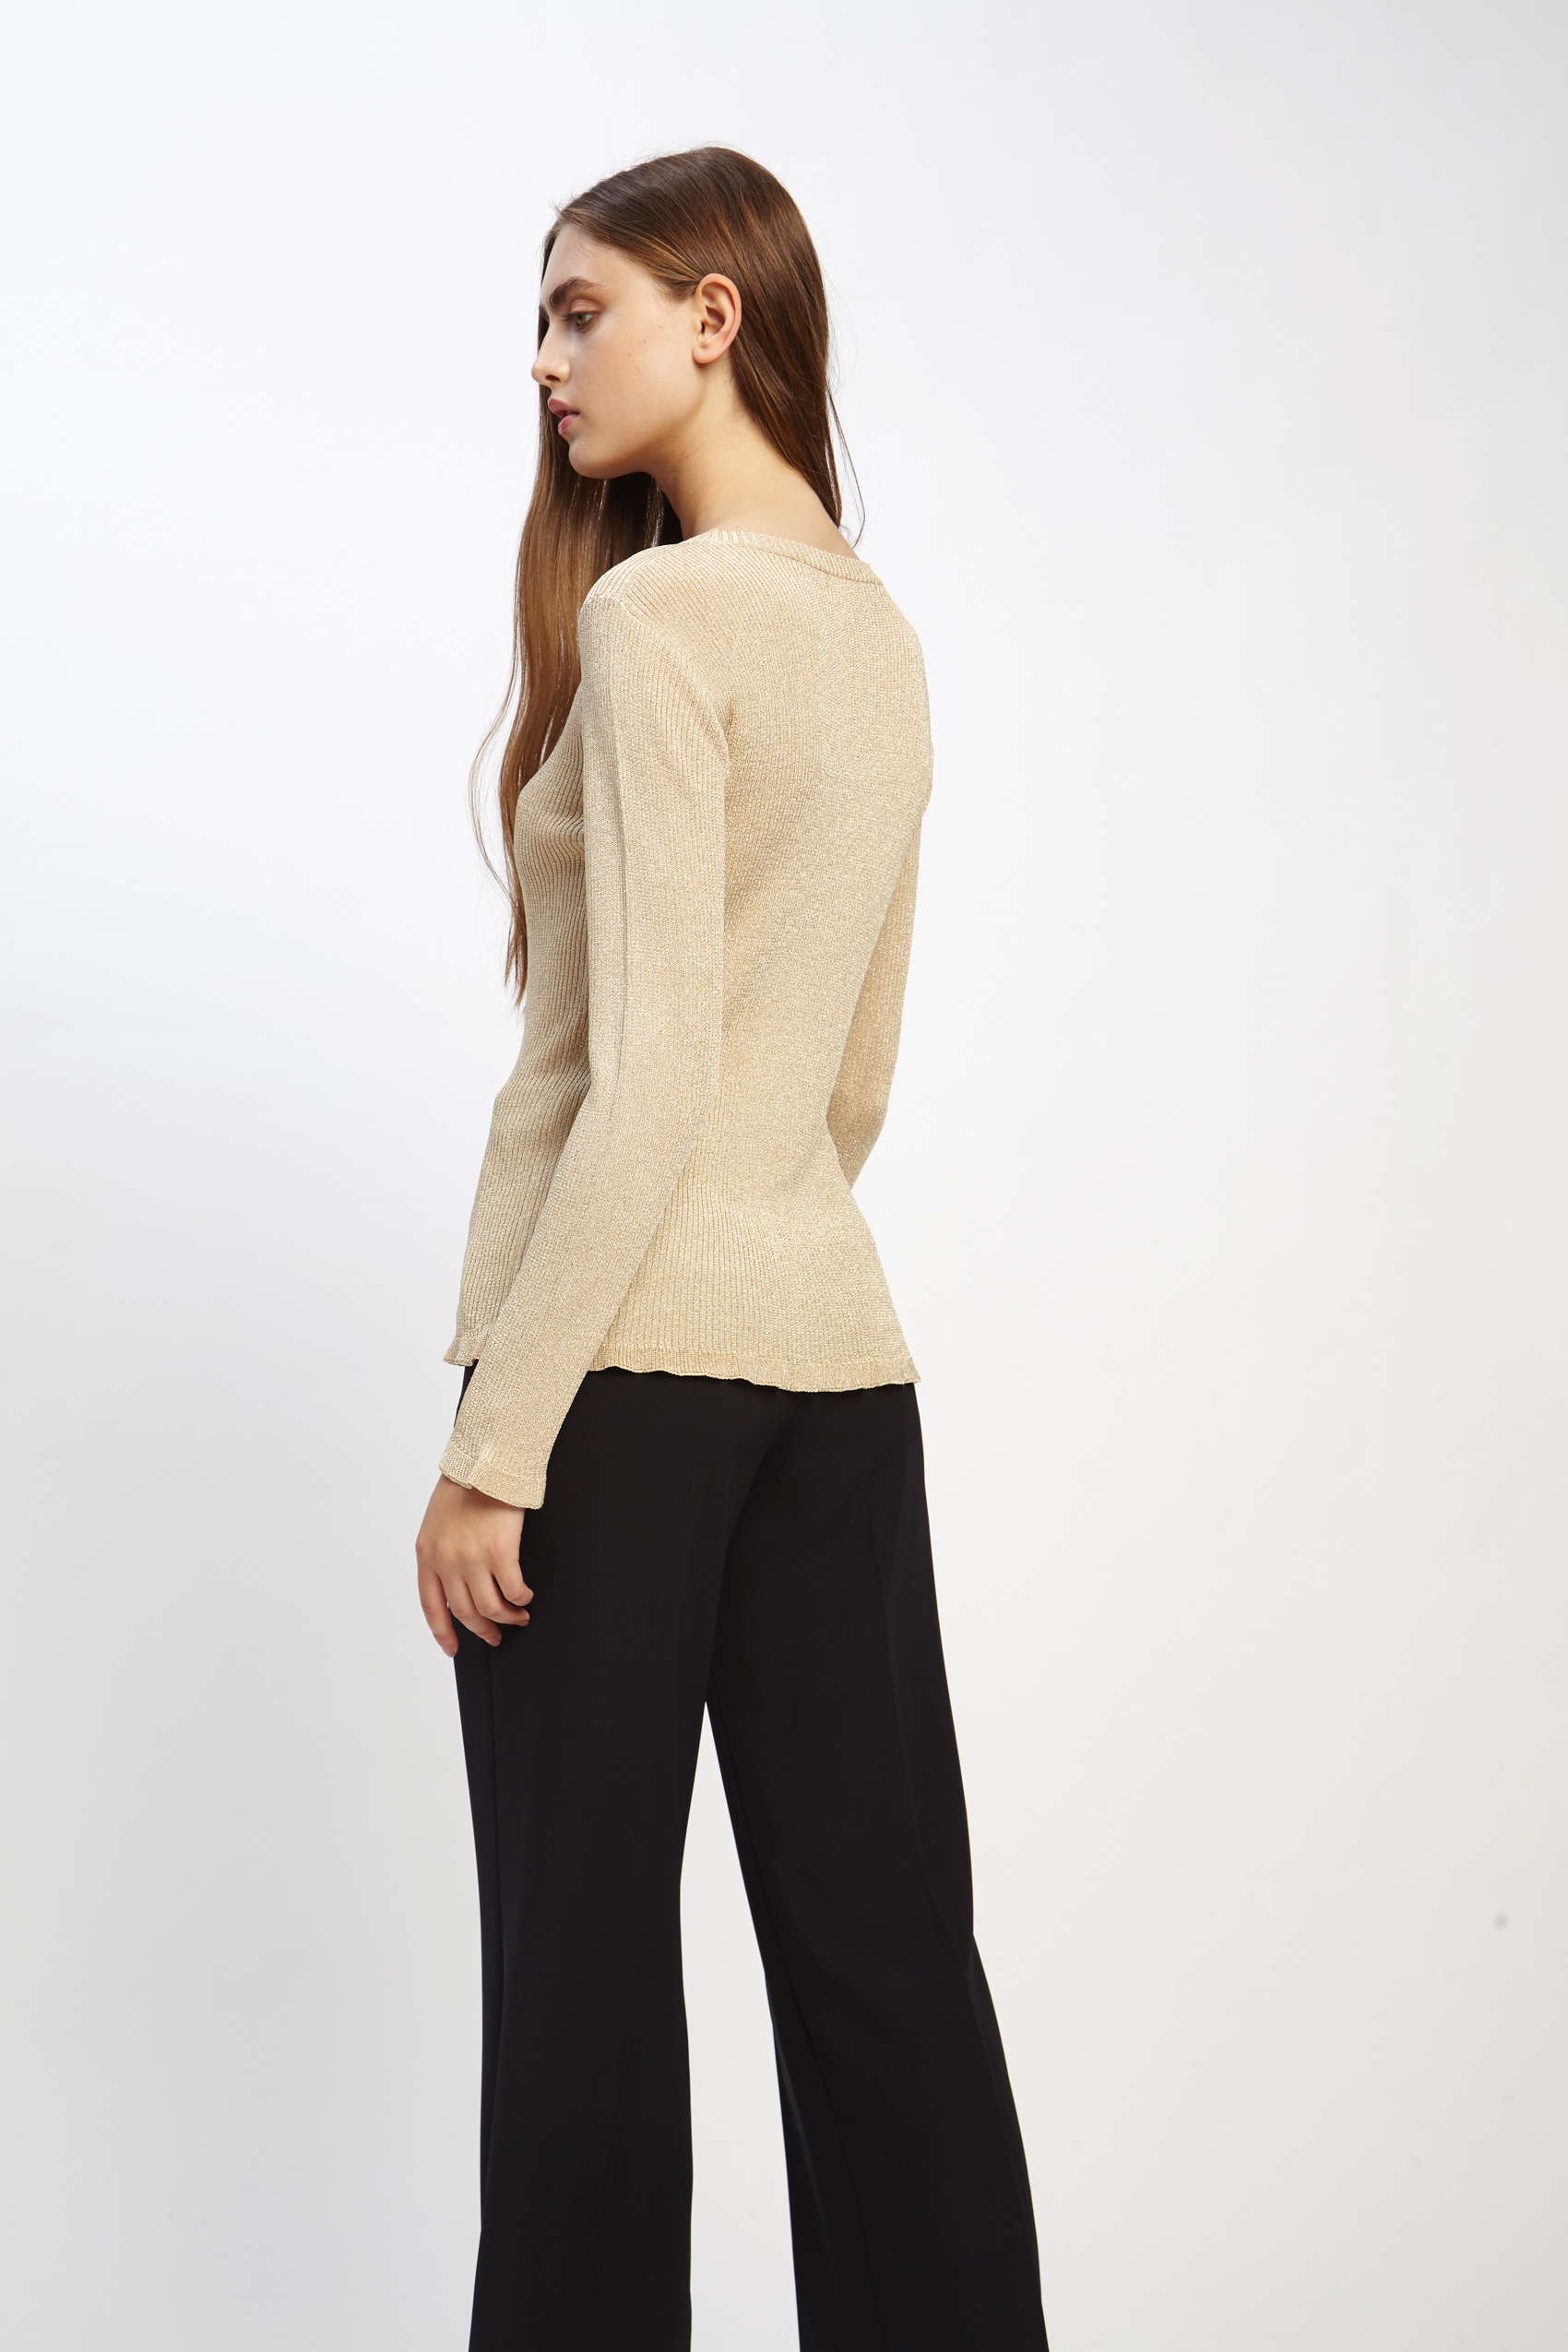 awada_sweater-celine_23-17-2019__picture-2510